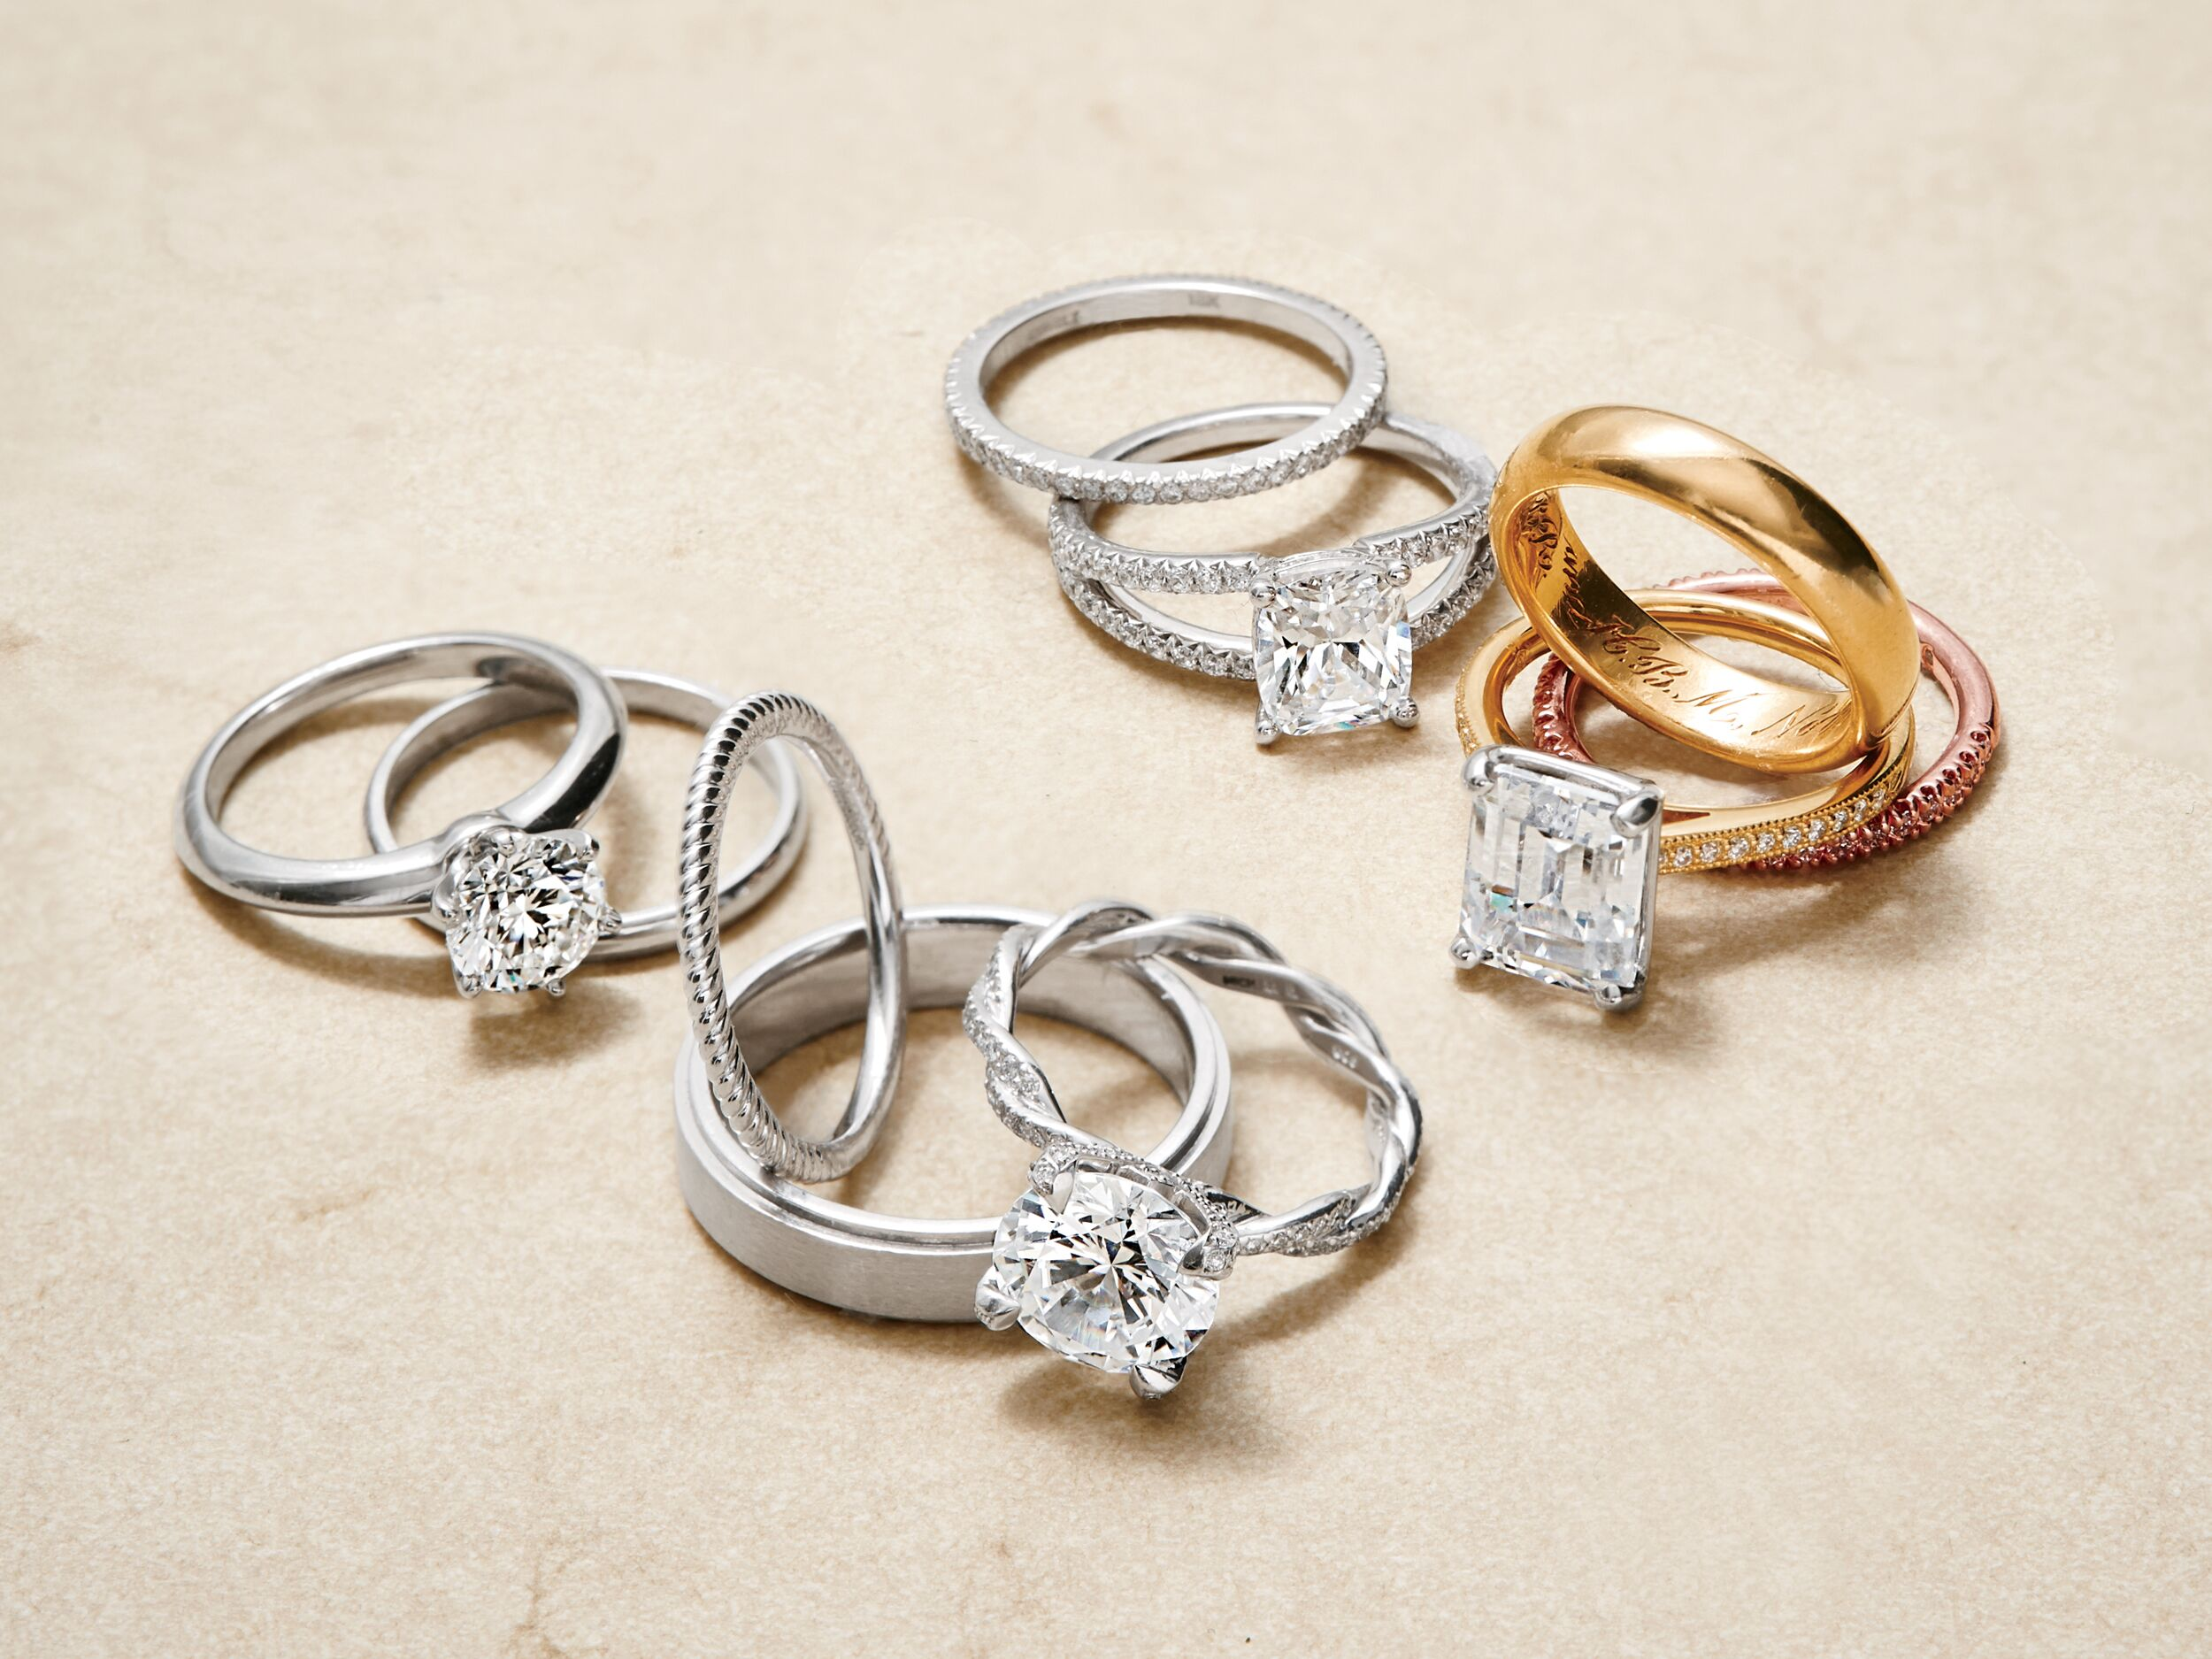 11 ways to pick the perfect wedding ring - Wedding Ring Engraving Ideas